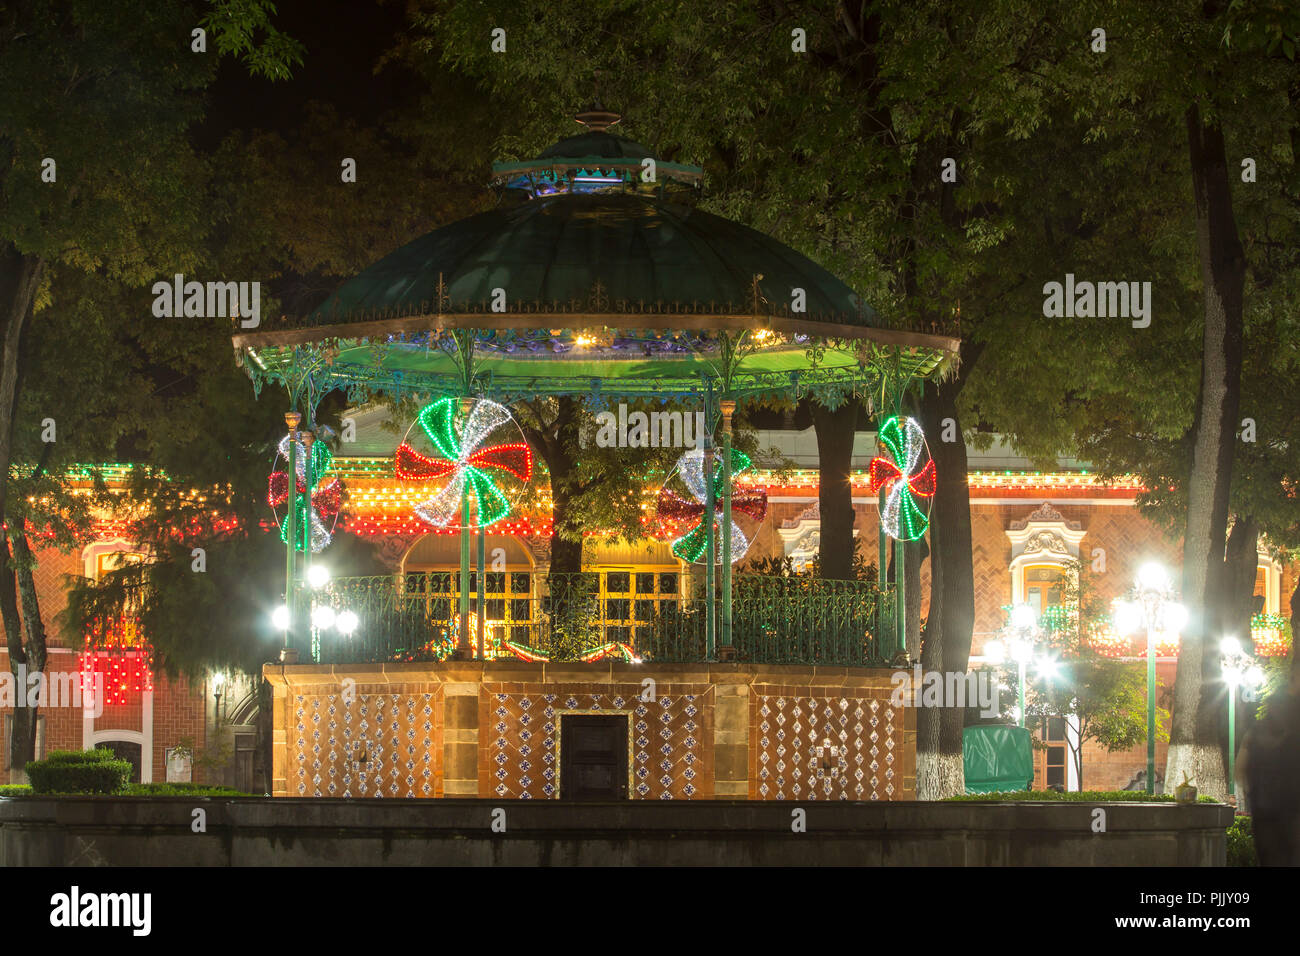 Tlaxcala, Mexico - September 03.2018 Tlaxcala city center as many other mexican cities is decorated with lights to celebrate mexican independence day - Stock Image